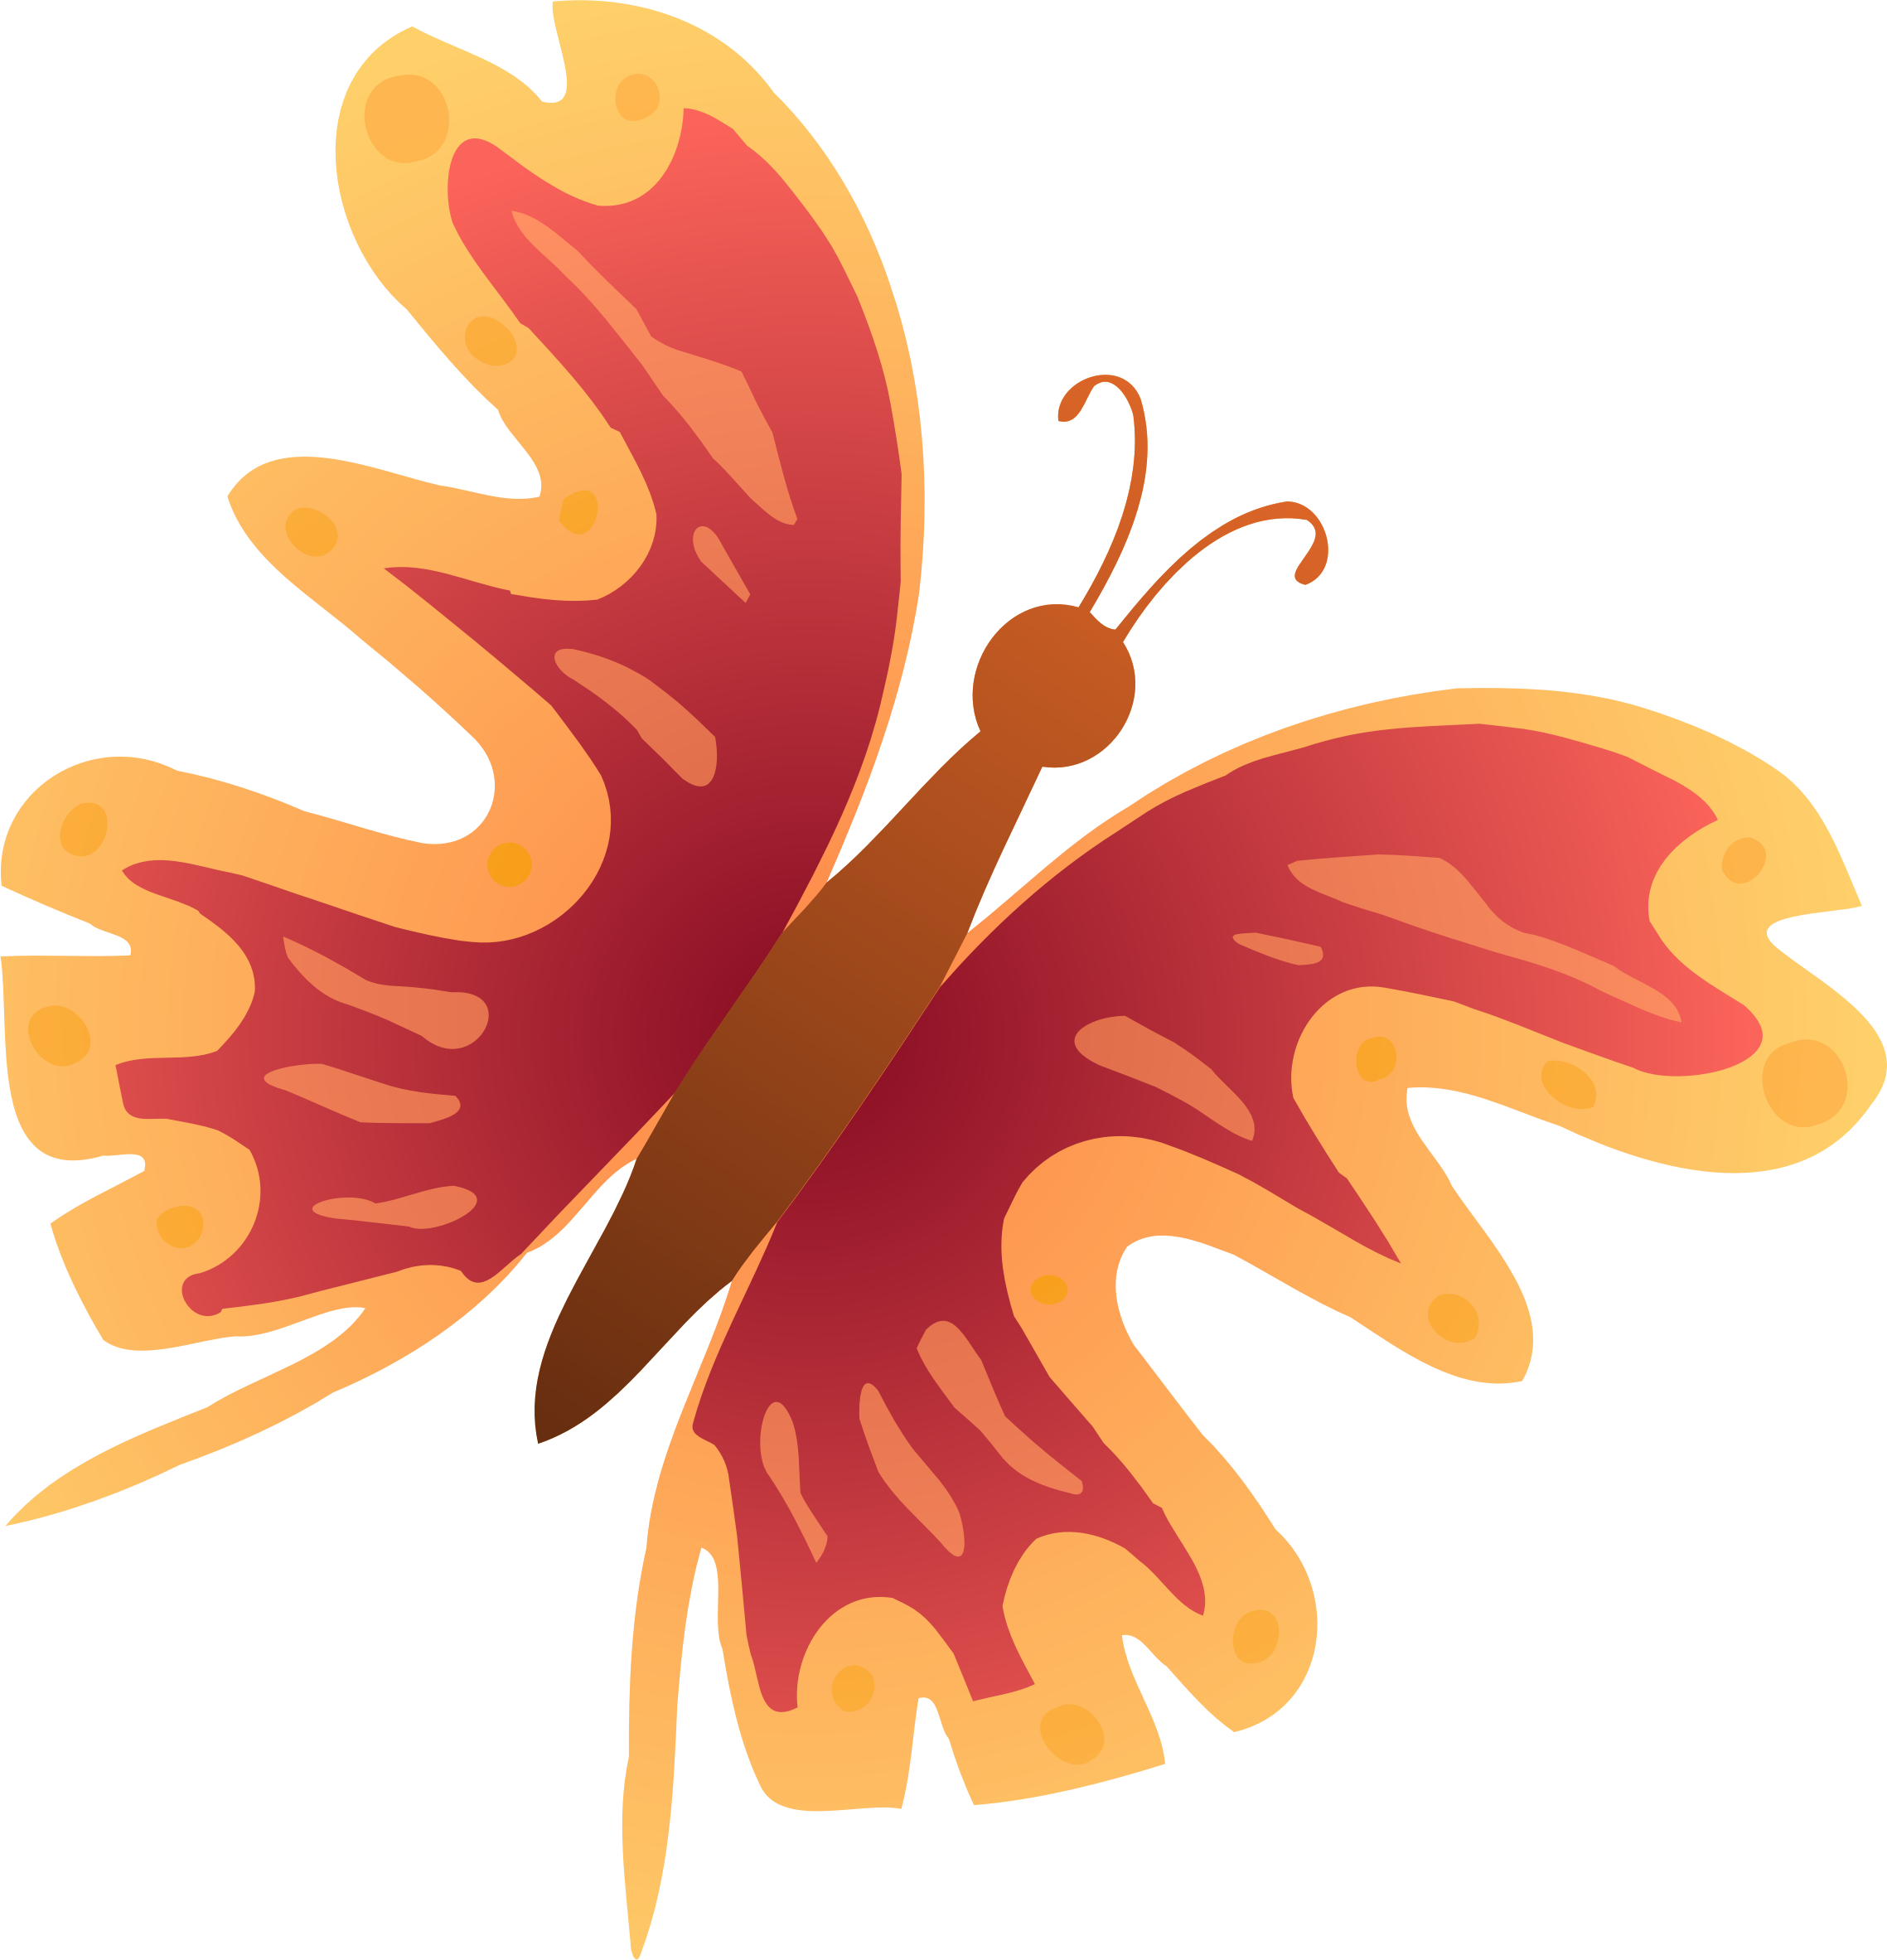 Clipart big image png. Butterfly clip art colourful jpg royalty free